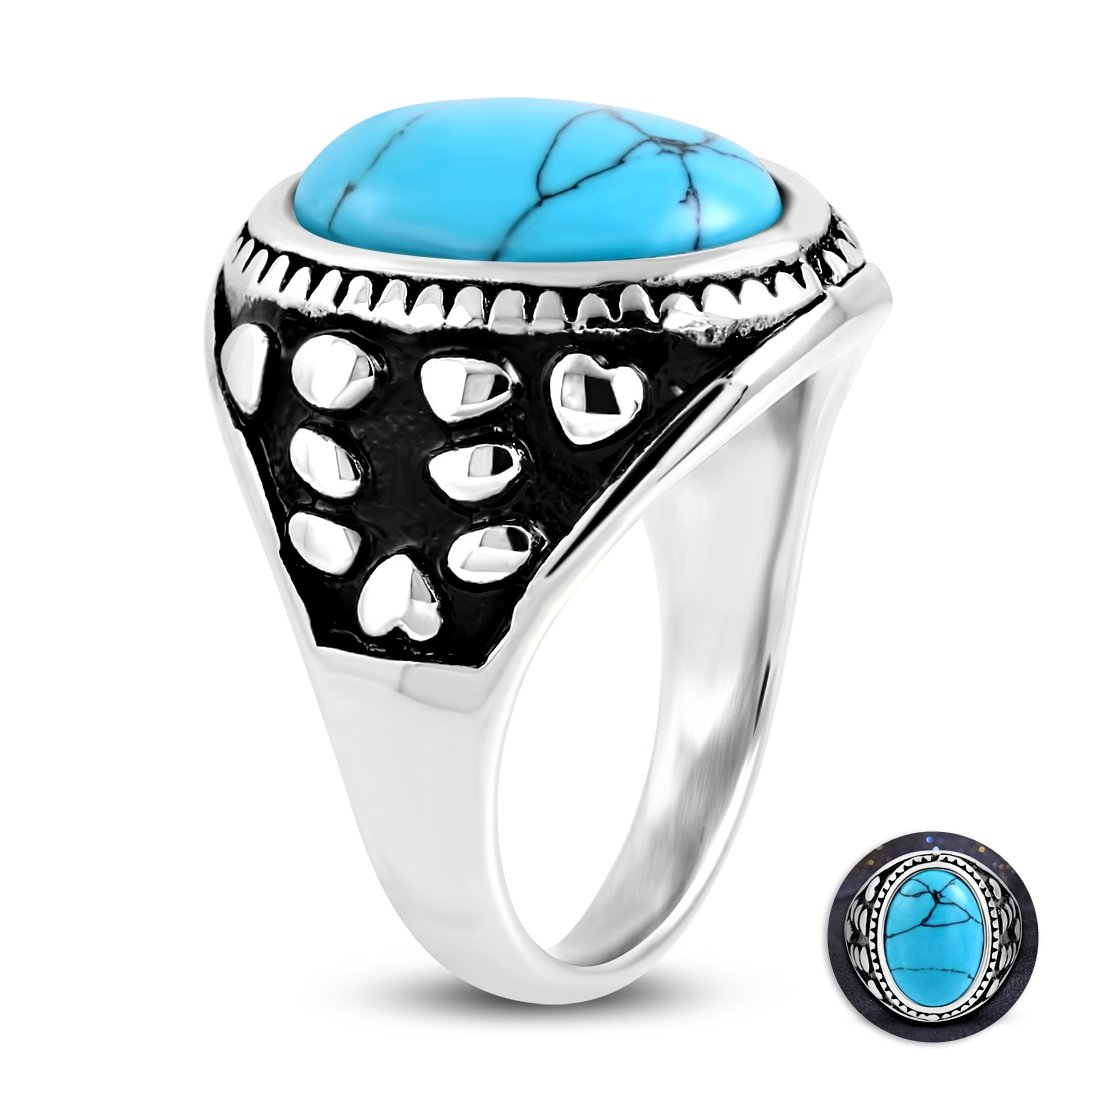 NRG Rings Stainless Steel 2 Color Bezel-Set Oval Cocktail Ring with Turquoise Stone